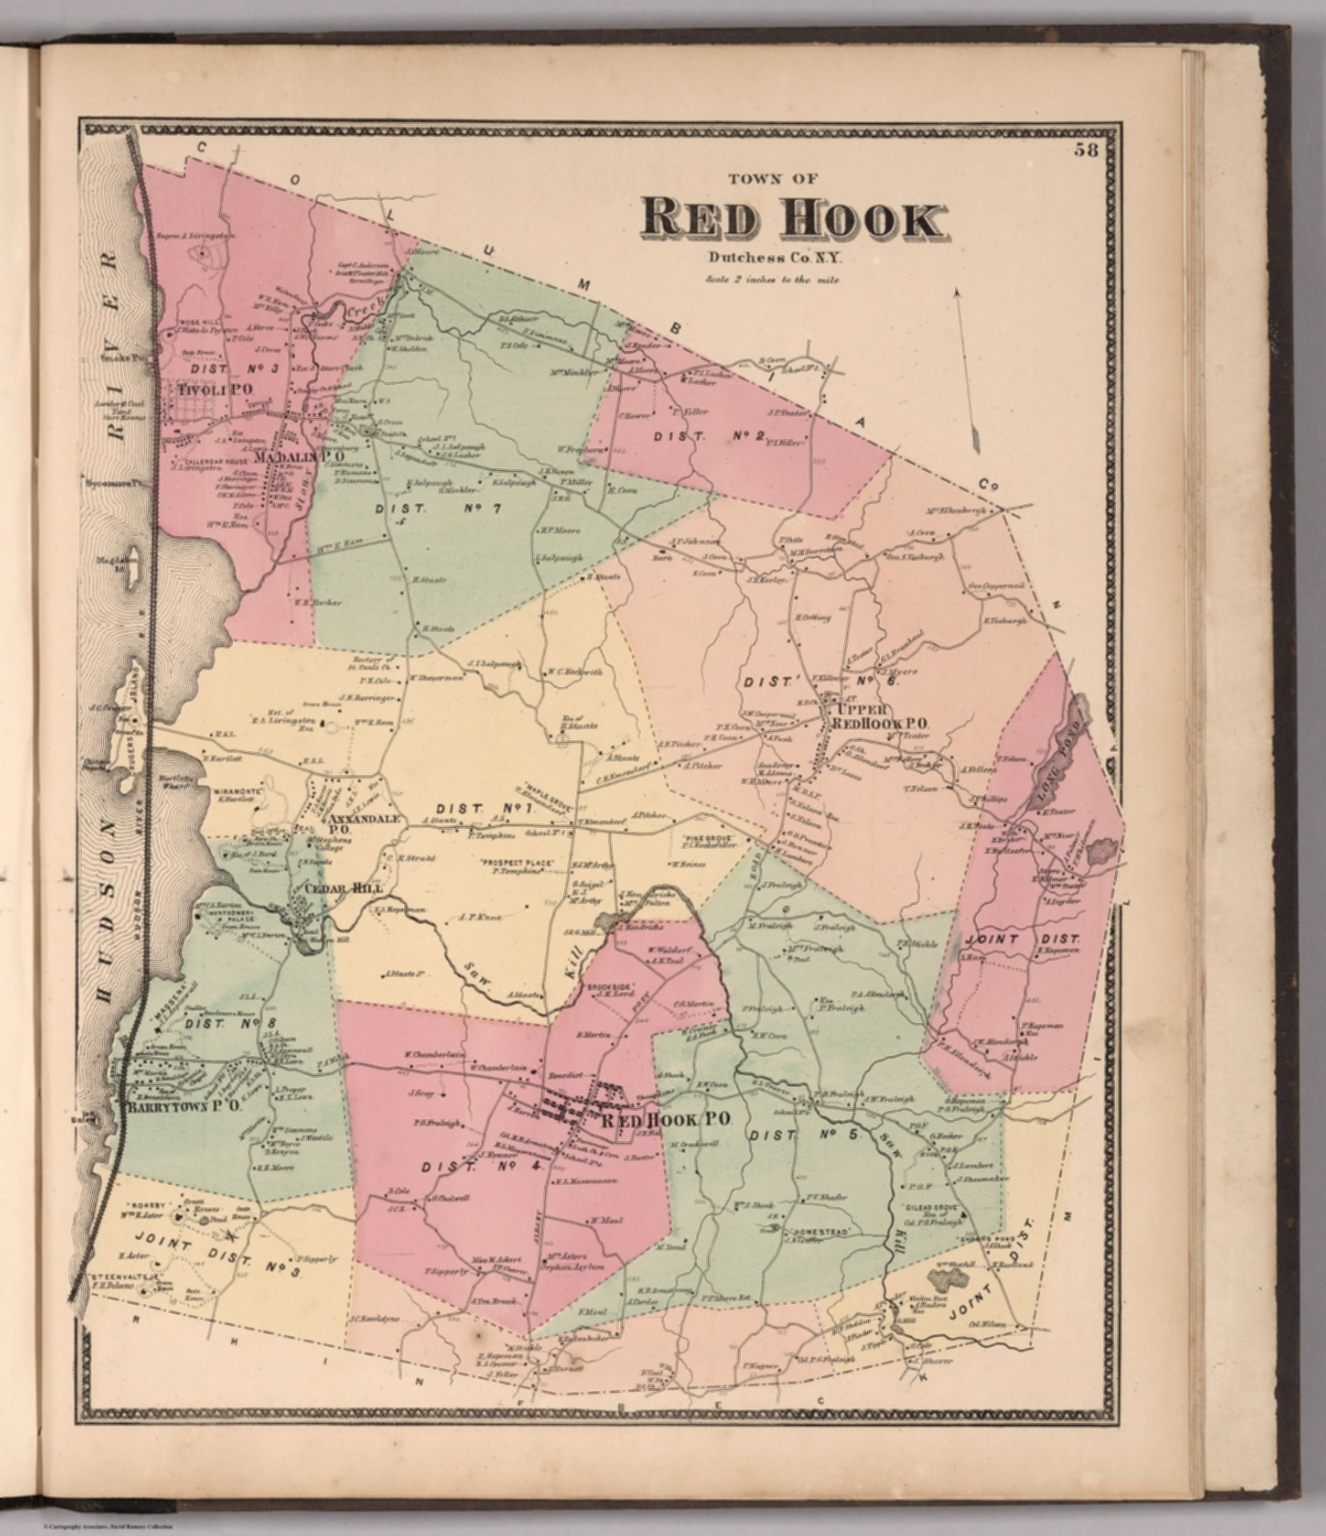 Town of Red Hook, Dutchess County, New York. - David Rumsey ...